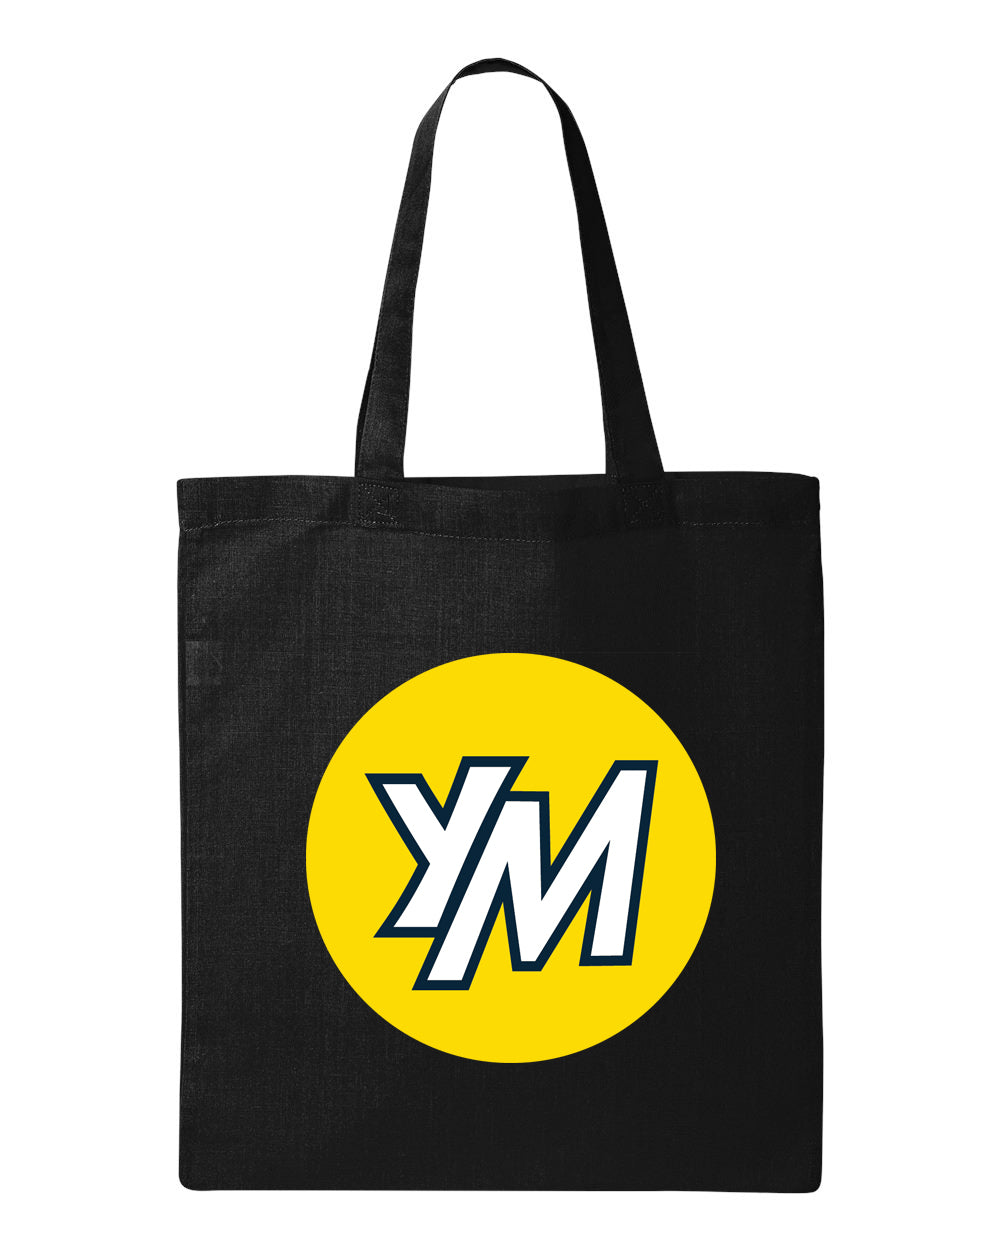 Yawn Mower : Tote Bag